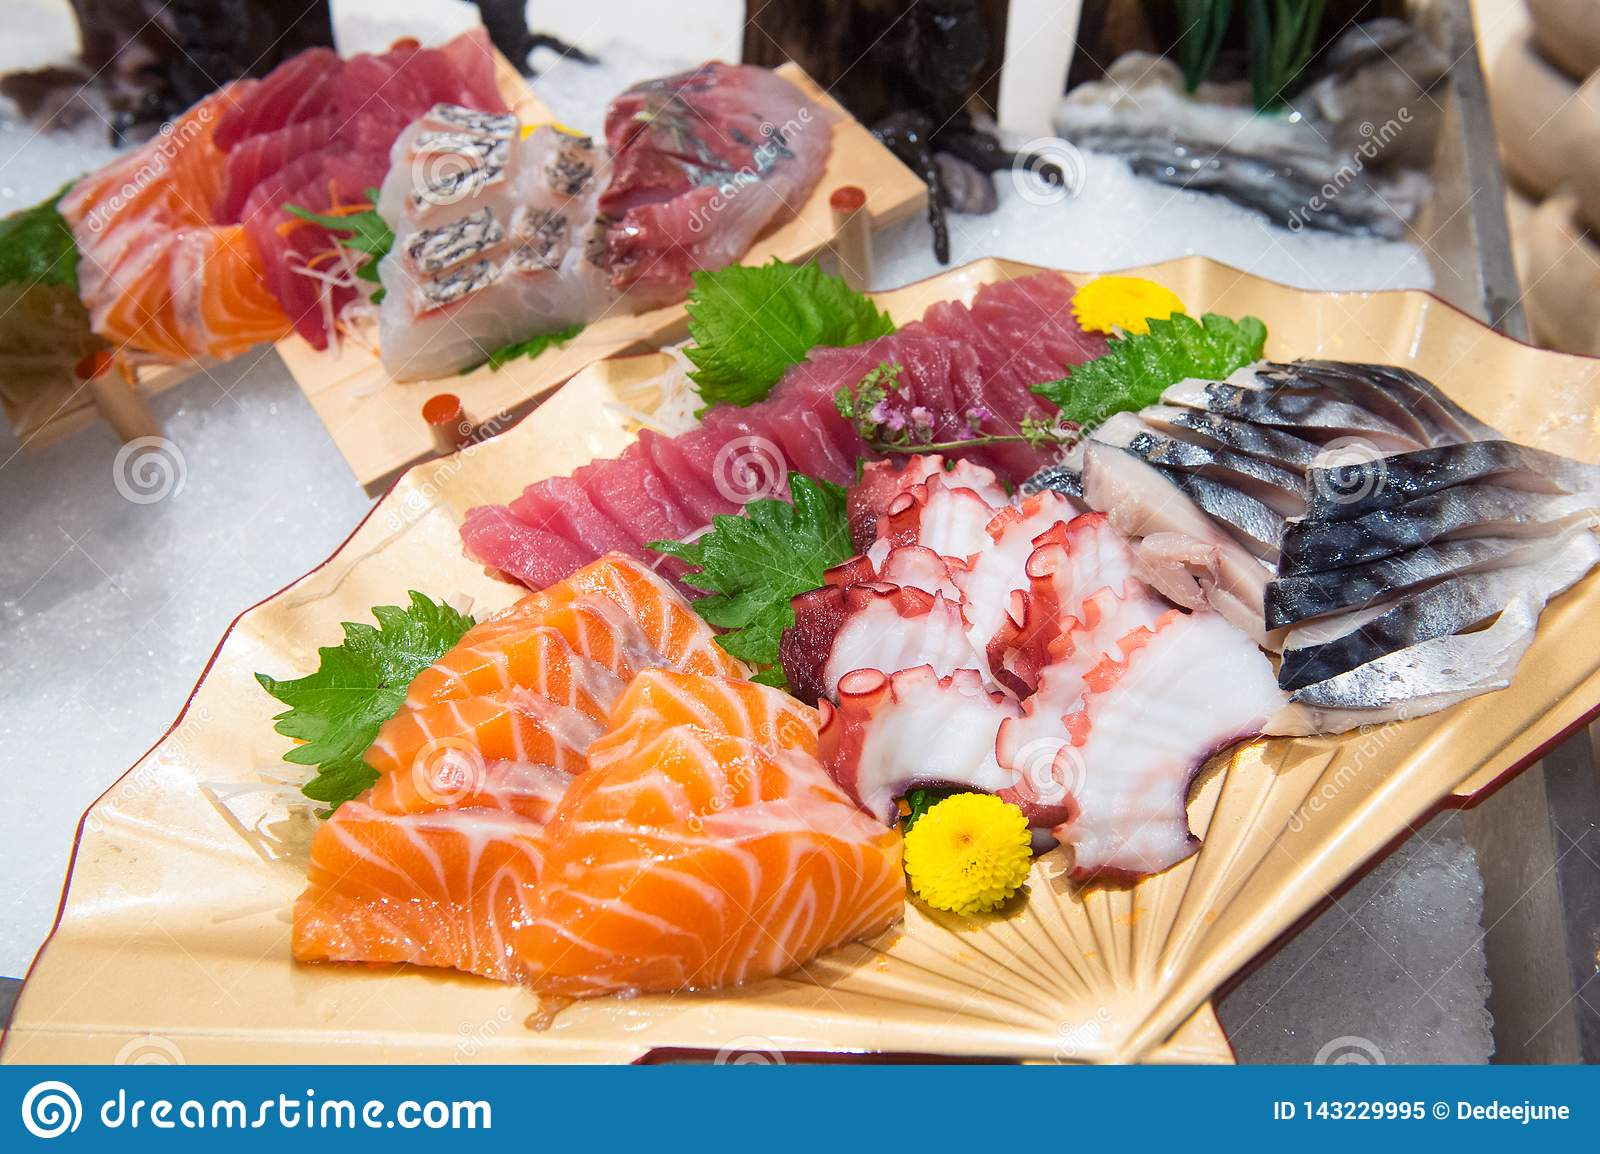 Sashimi on a plate in a Japanese restaurant